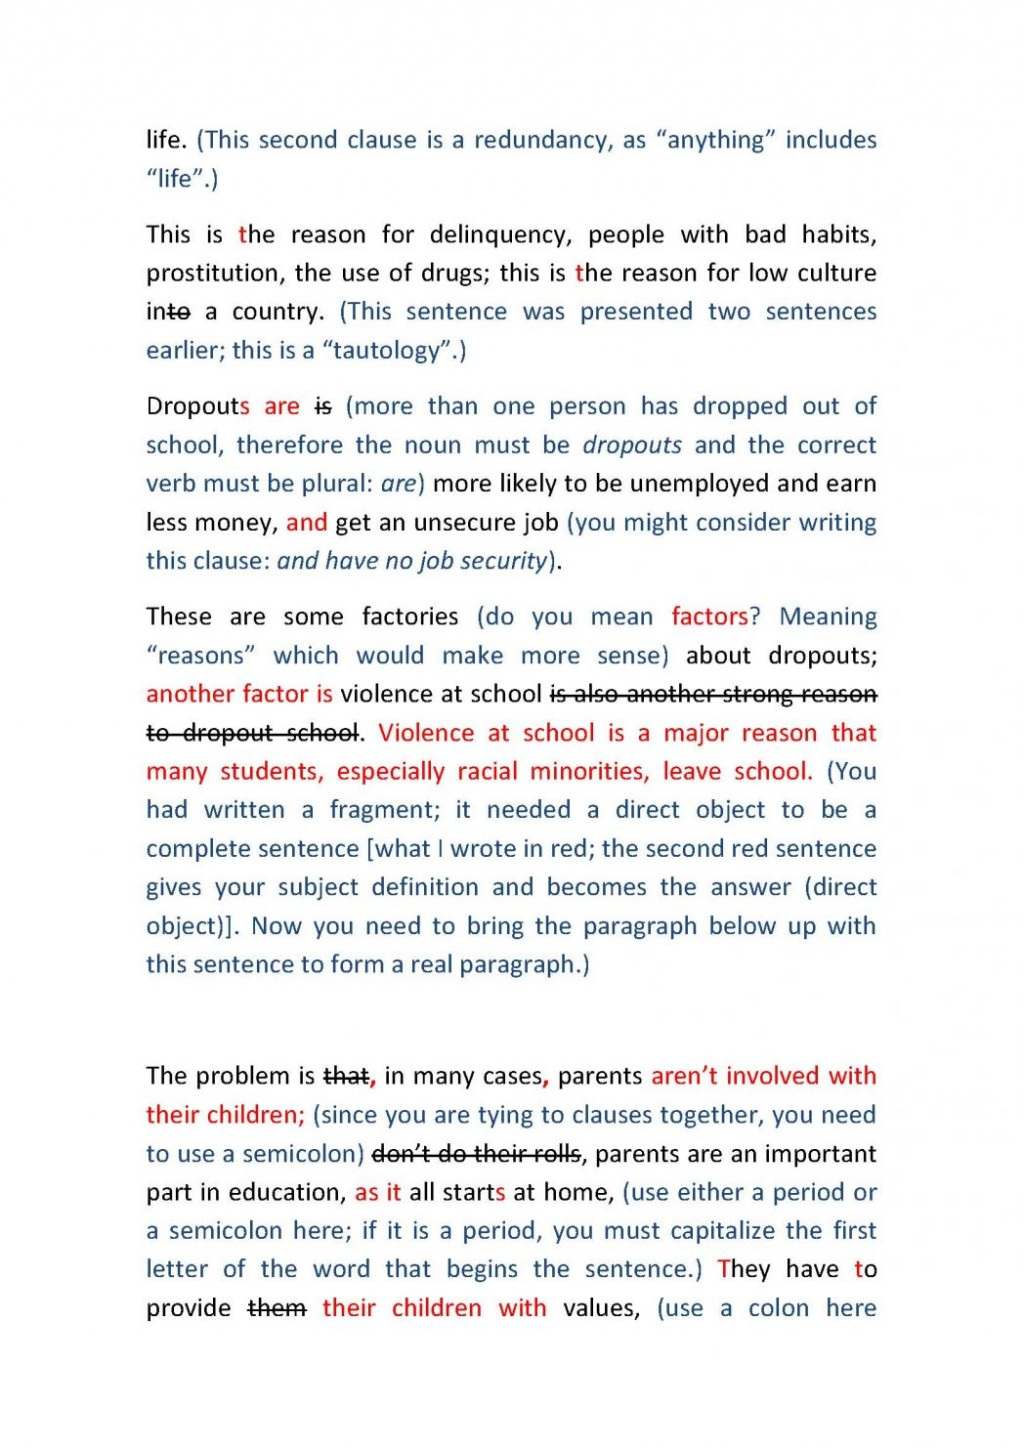 026 Abortion Pro Life Essay For High School Does Judith Persuasive Topics About Cyberbullying Dropouts Dialey Read And Graded Pa Cyber Bullying Argumentative 1048x1482 Stupendous Contest 2018 2019 Titles Large